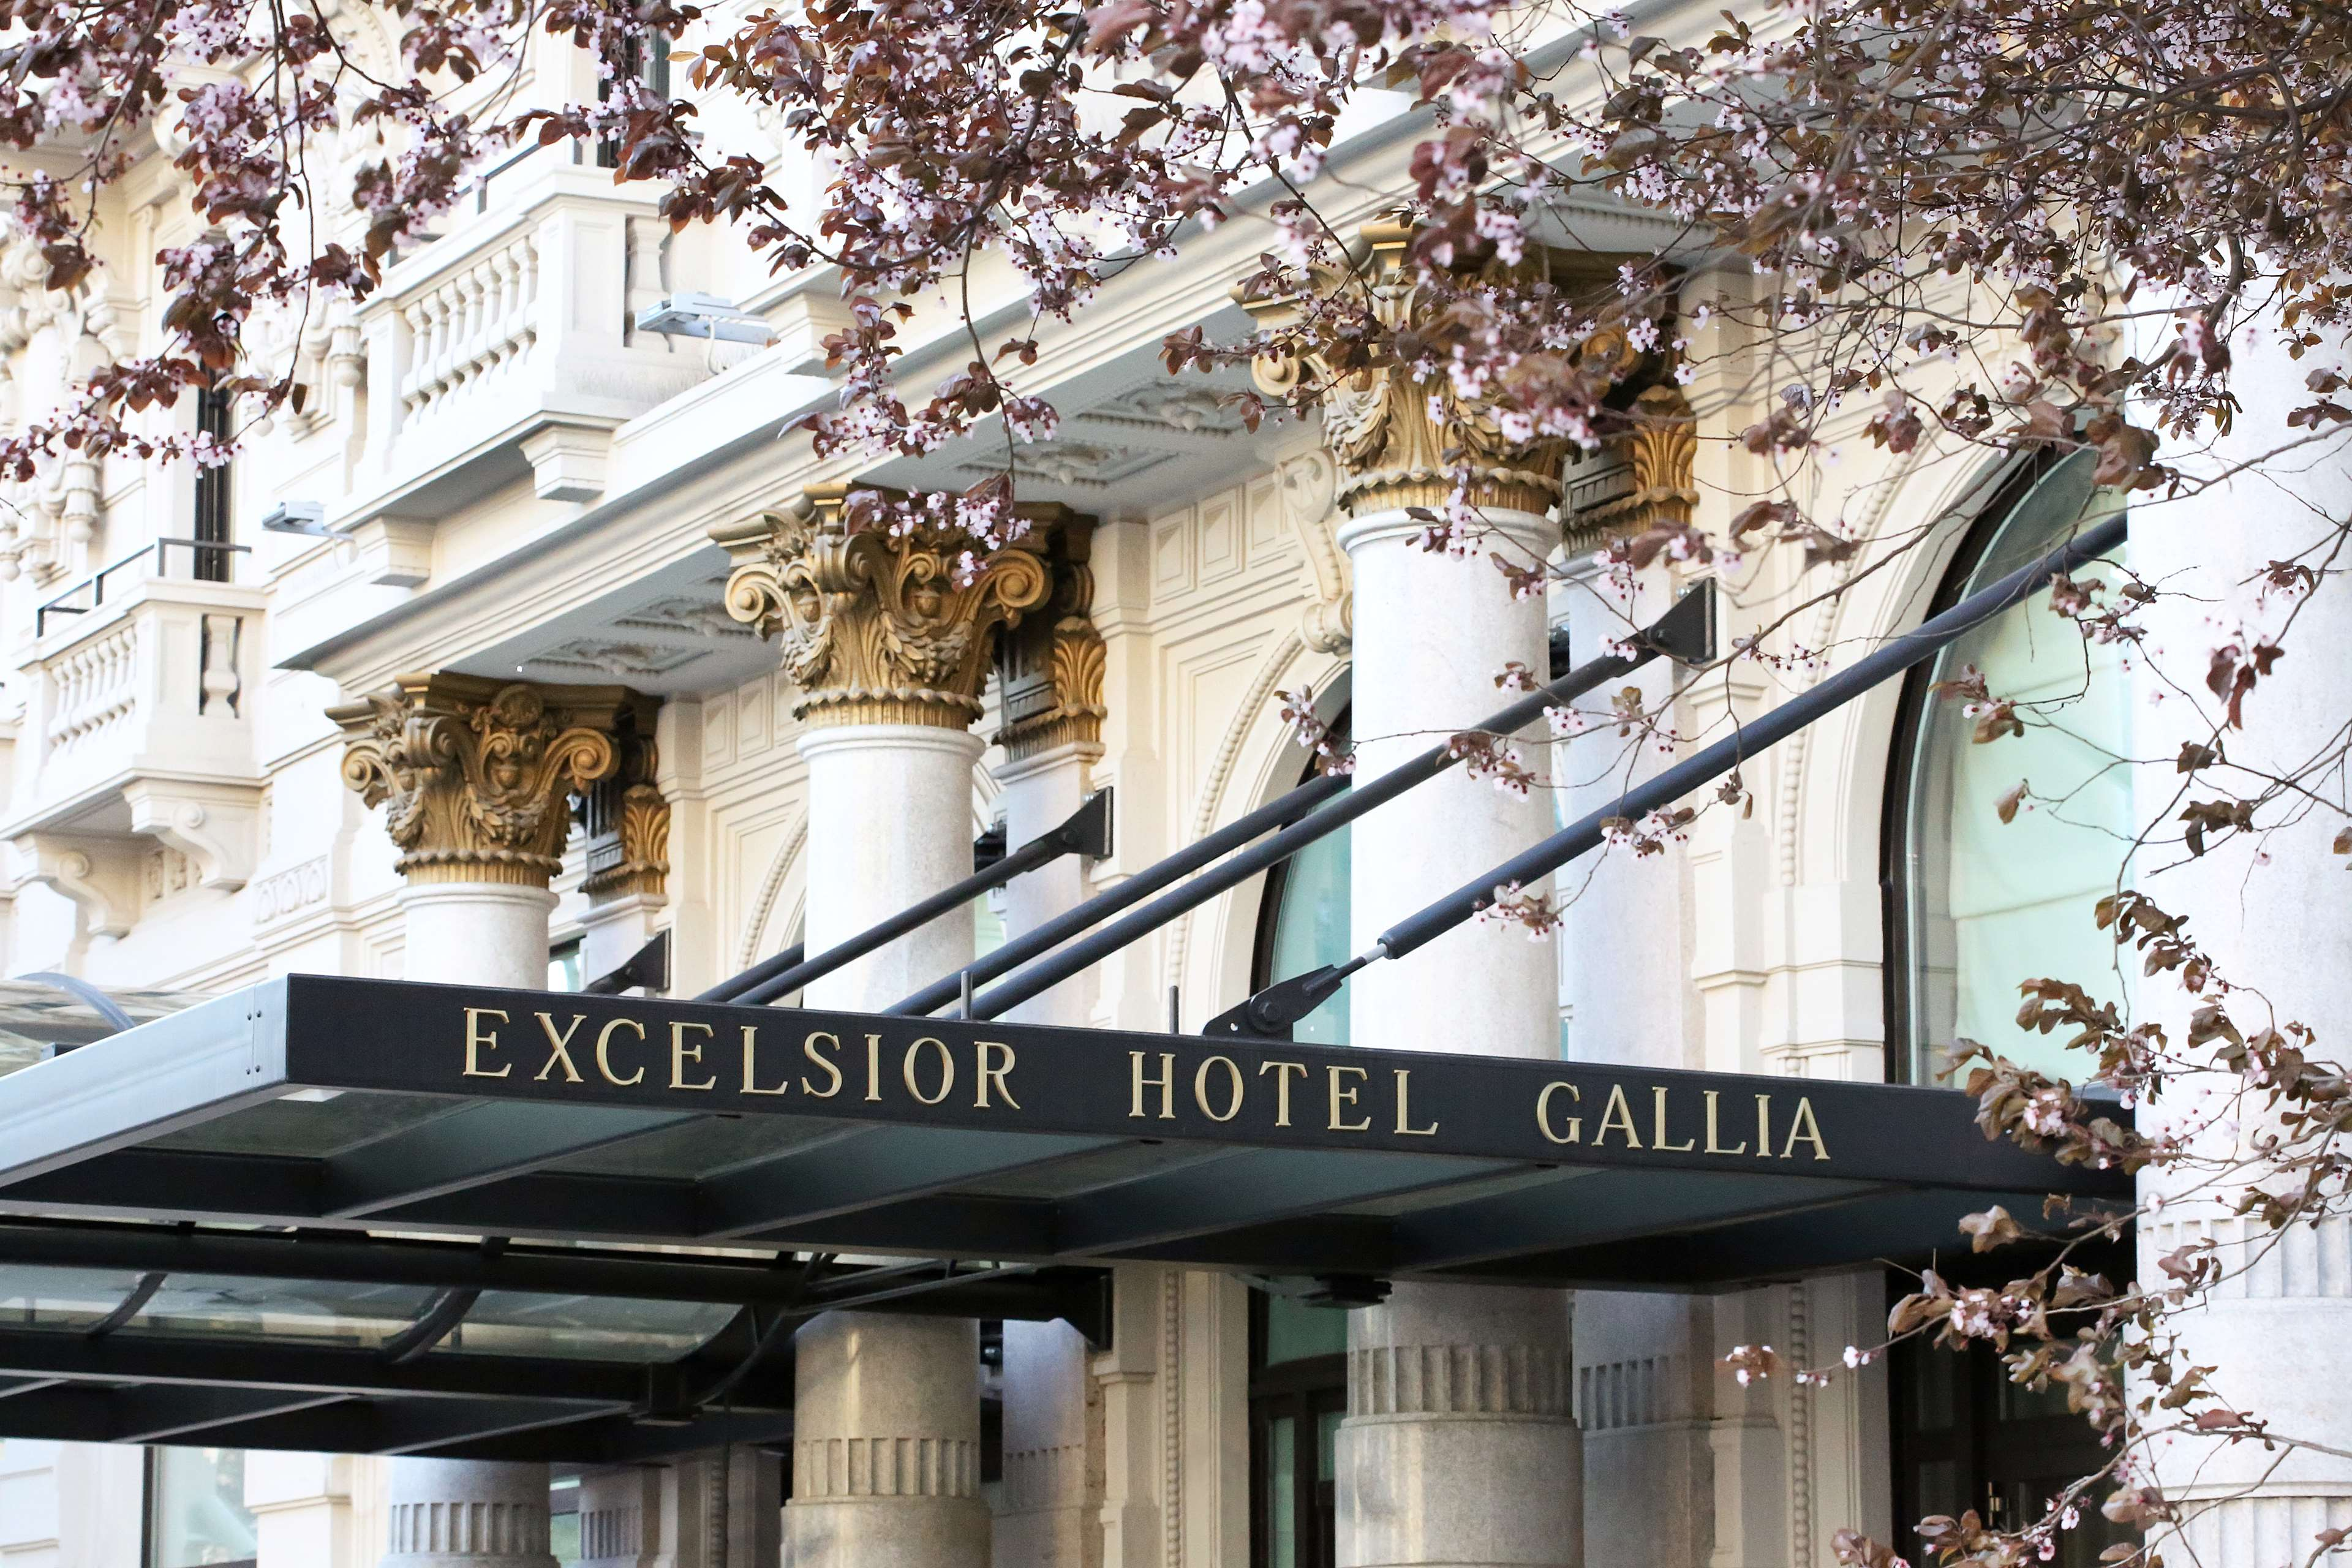 Excelsior hotel gallia a luxury collection hotel milan for Hotel milan